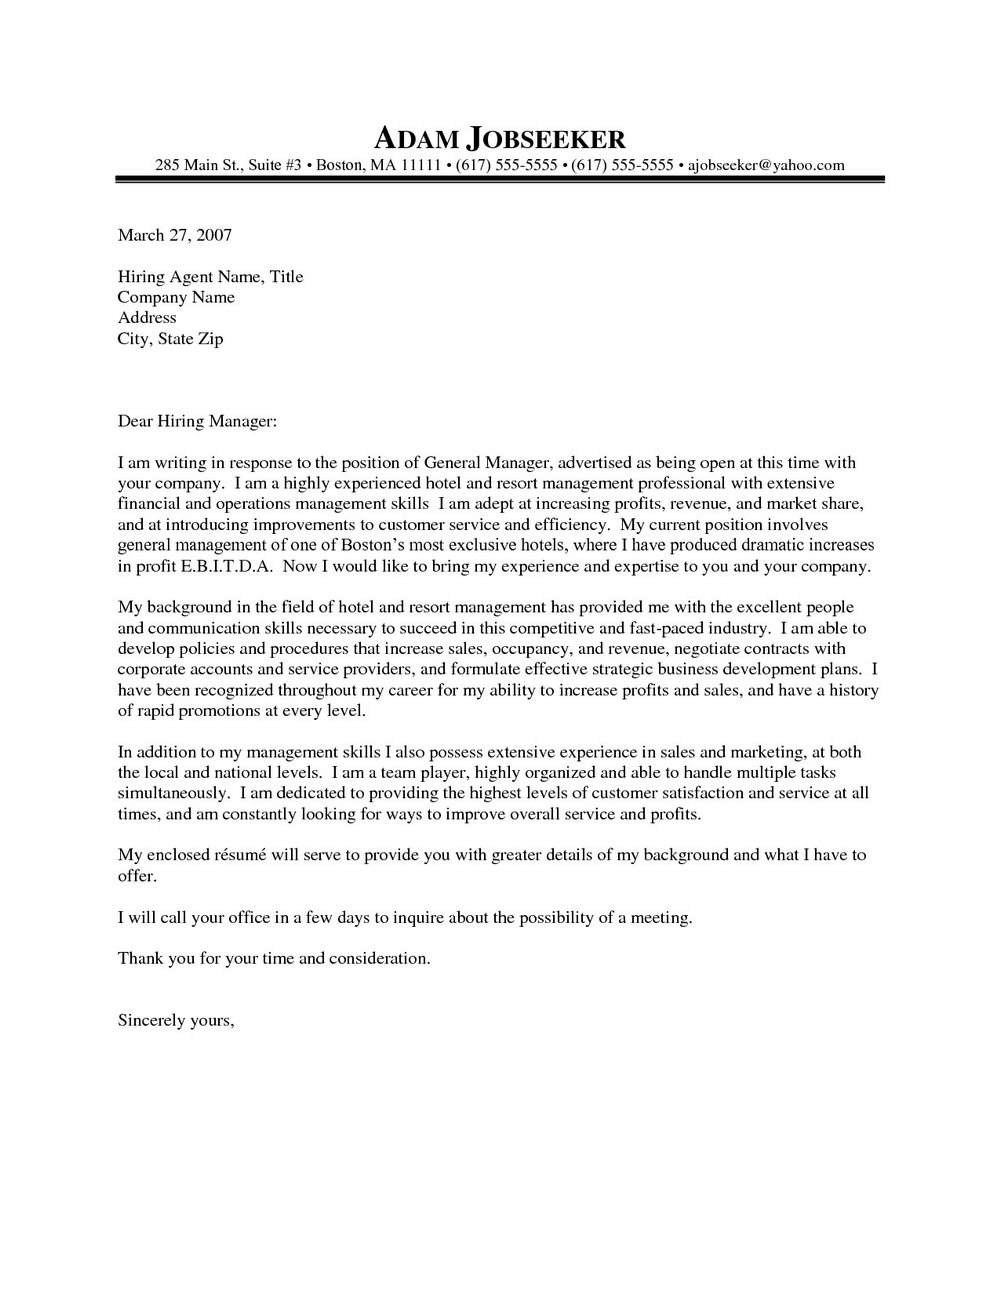 Property Manager Cover Letter Sample Free - Cover Letters ...